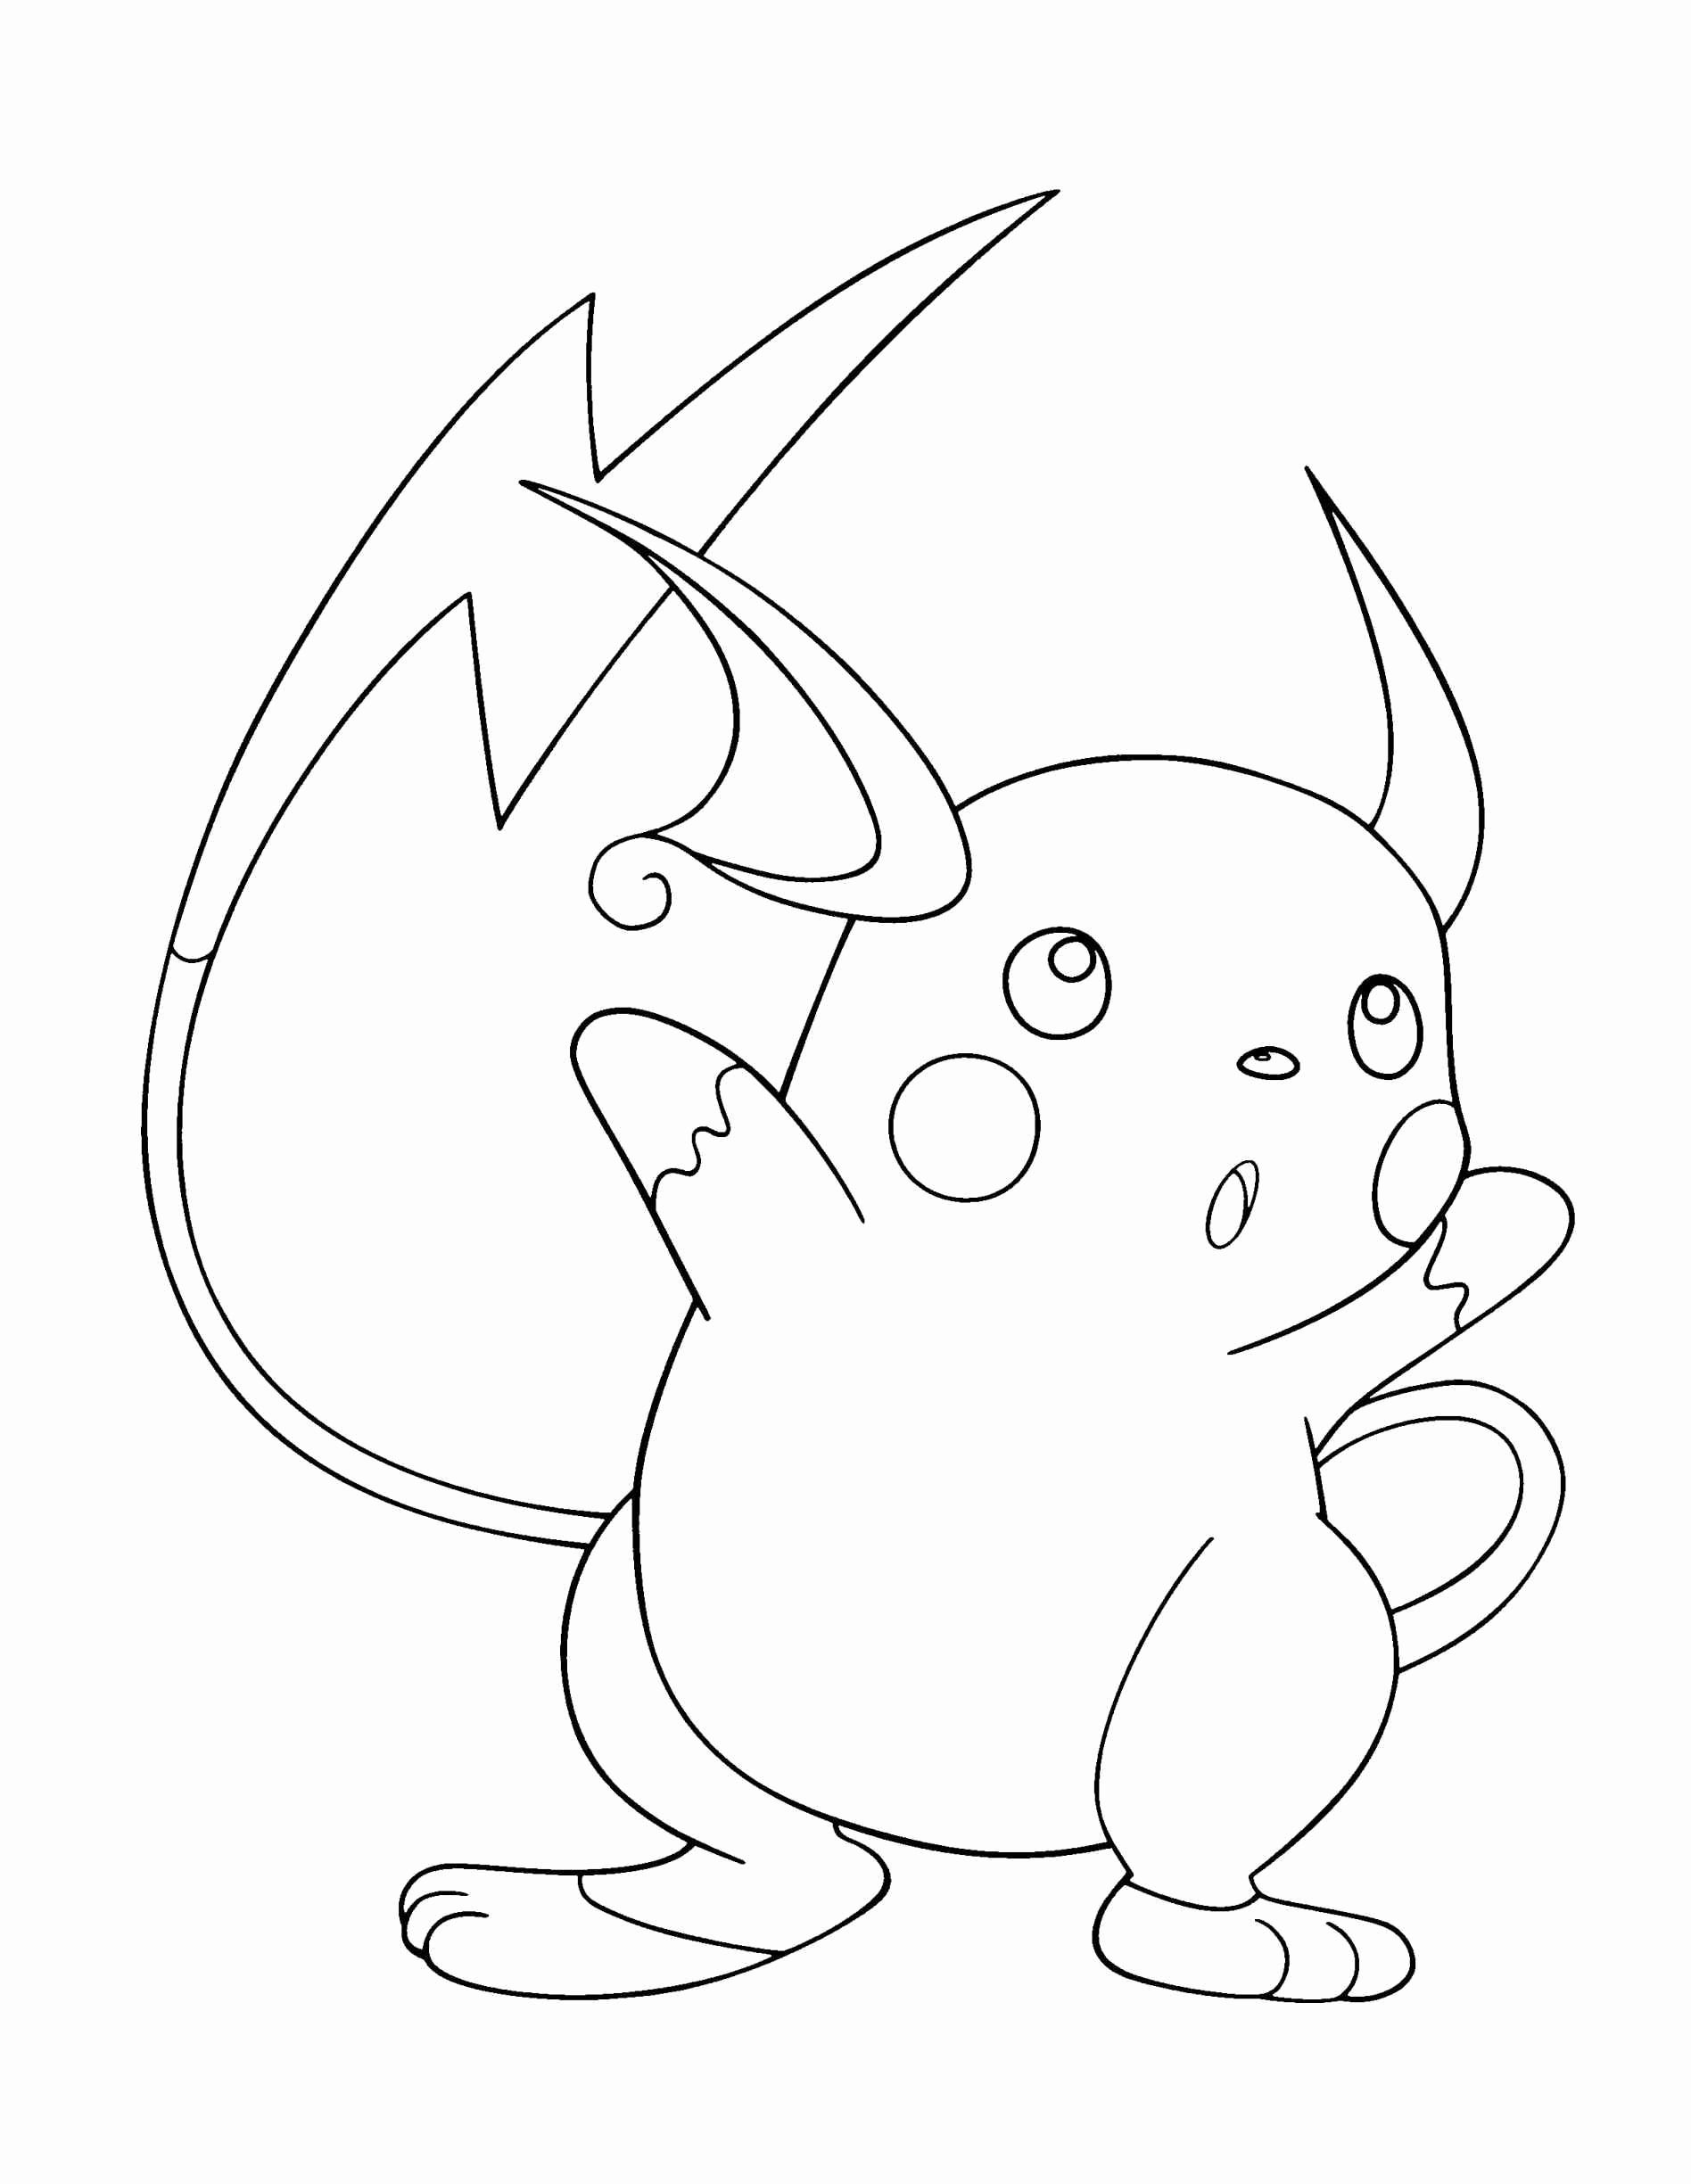 Coloring Pages For Kids Pokemon Raichu In 2020 Pokemon Coloring Pages Coloring Pages Cute Coloring Pages